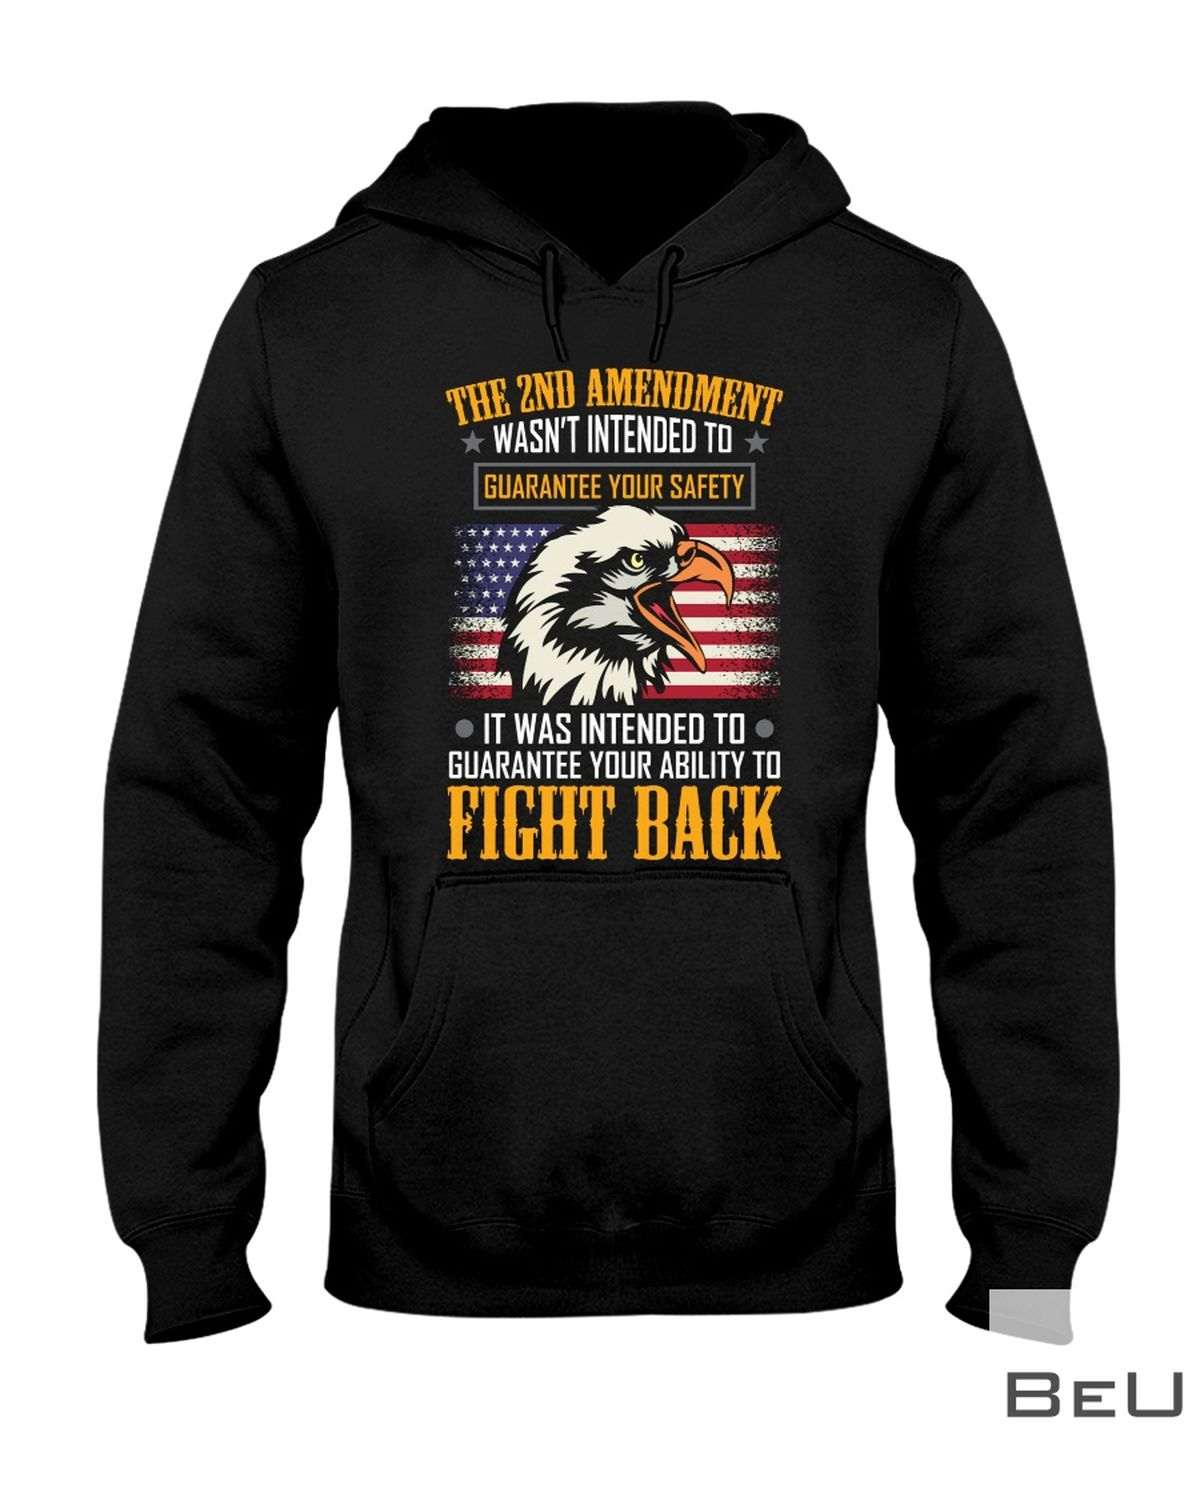 Fight Back The 2nd Amendment Wasn't Intended To Guarantee Your Safety Shirtz